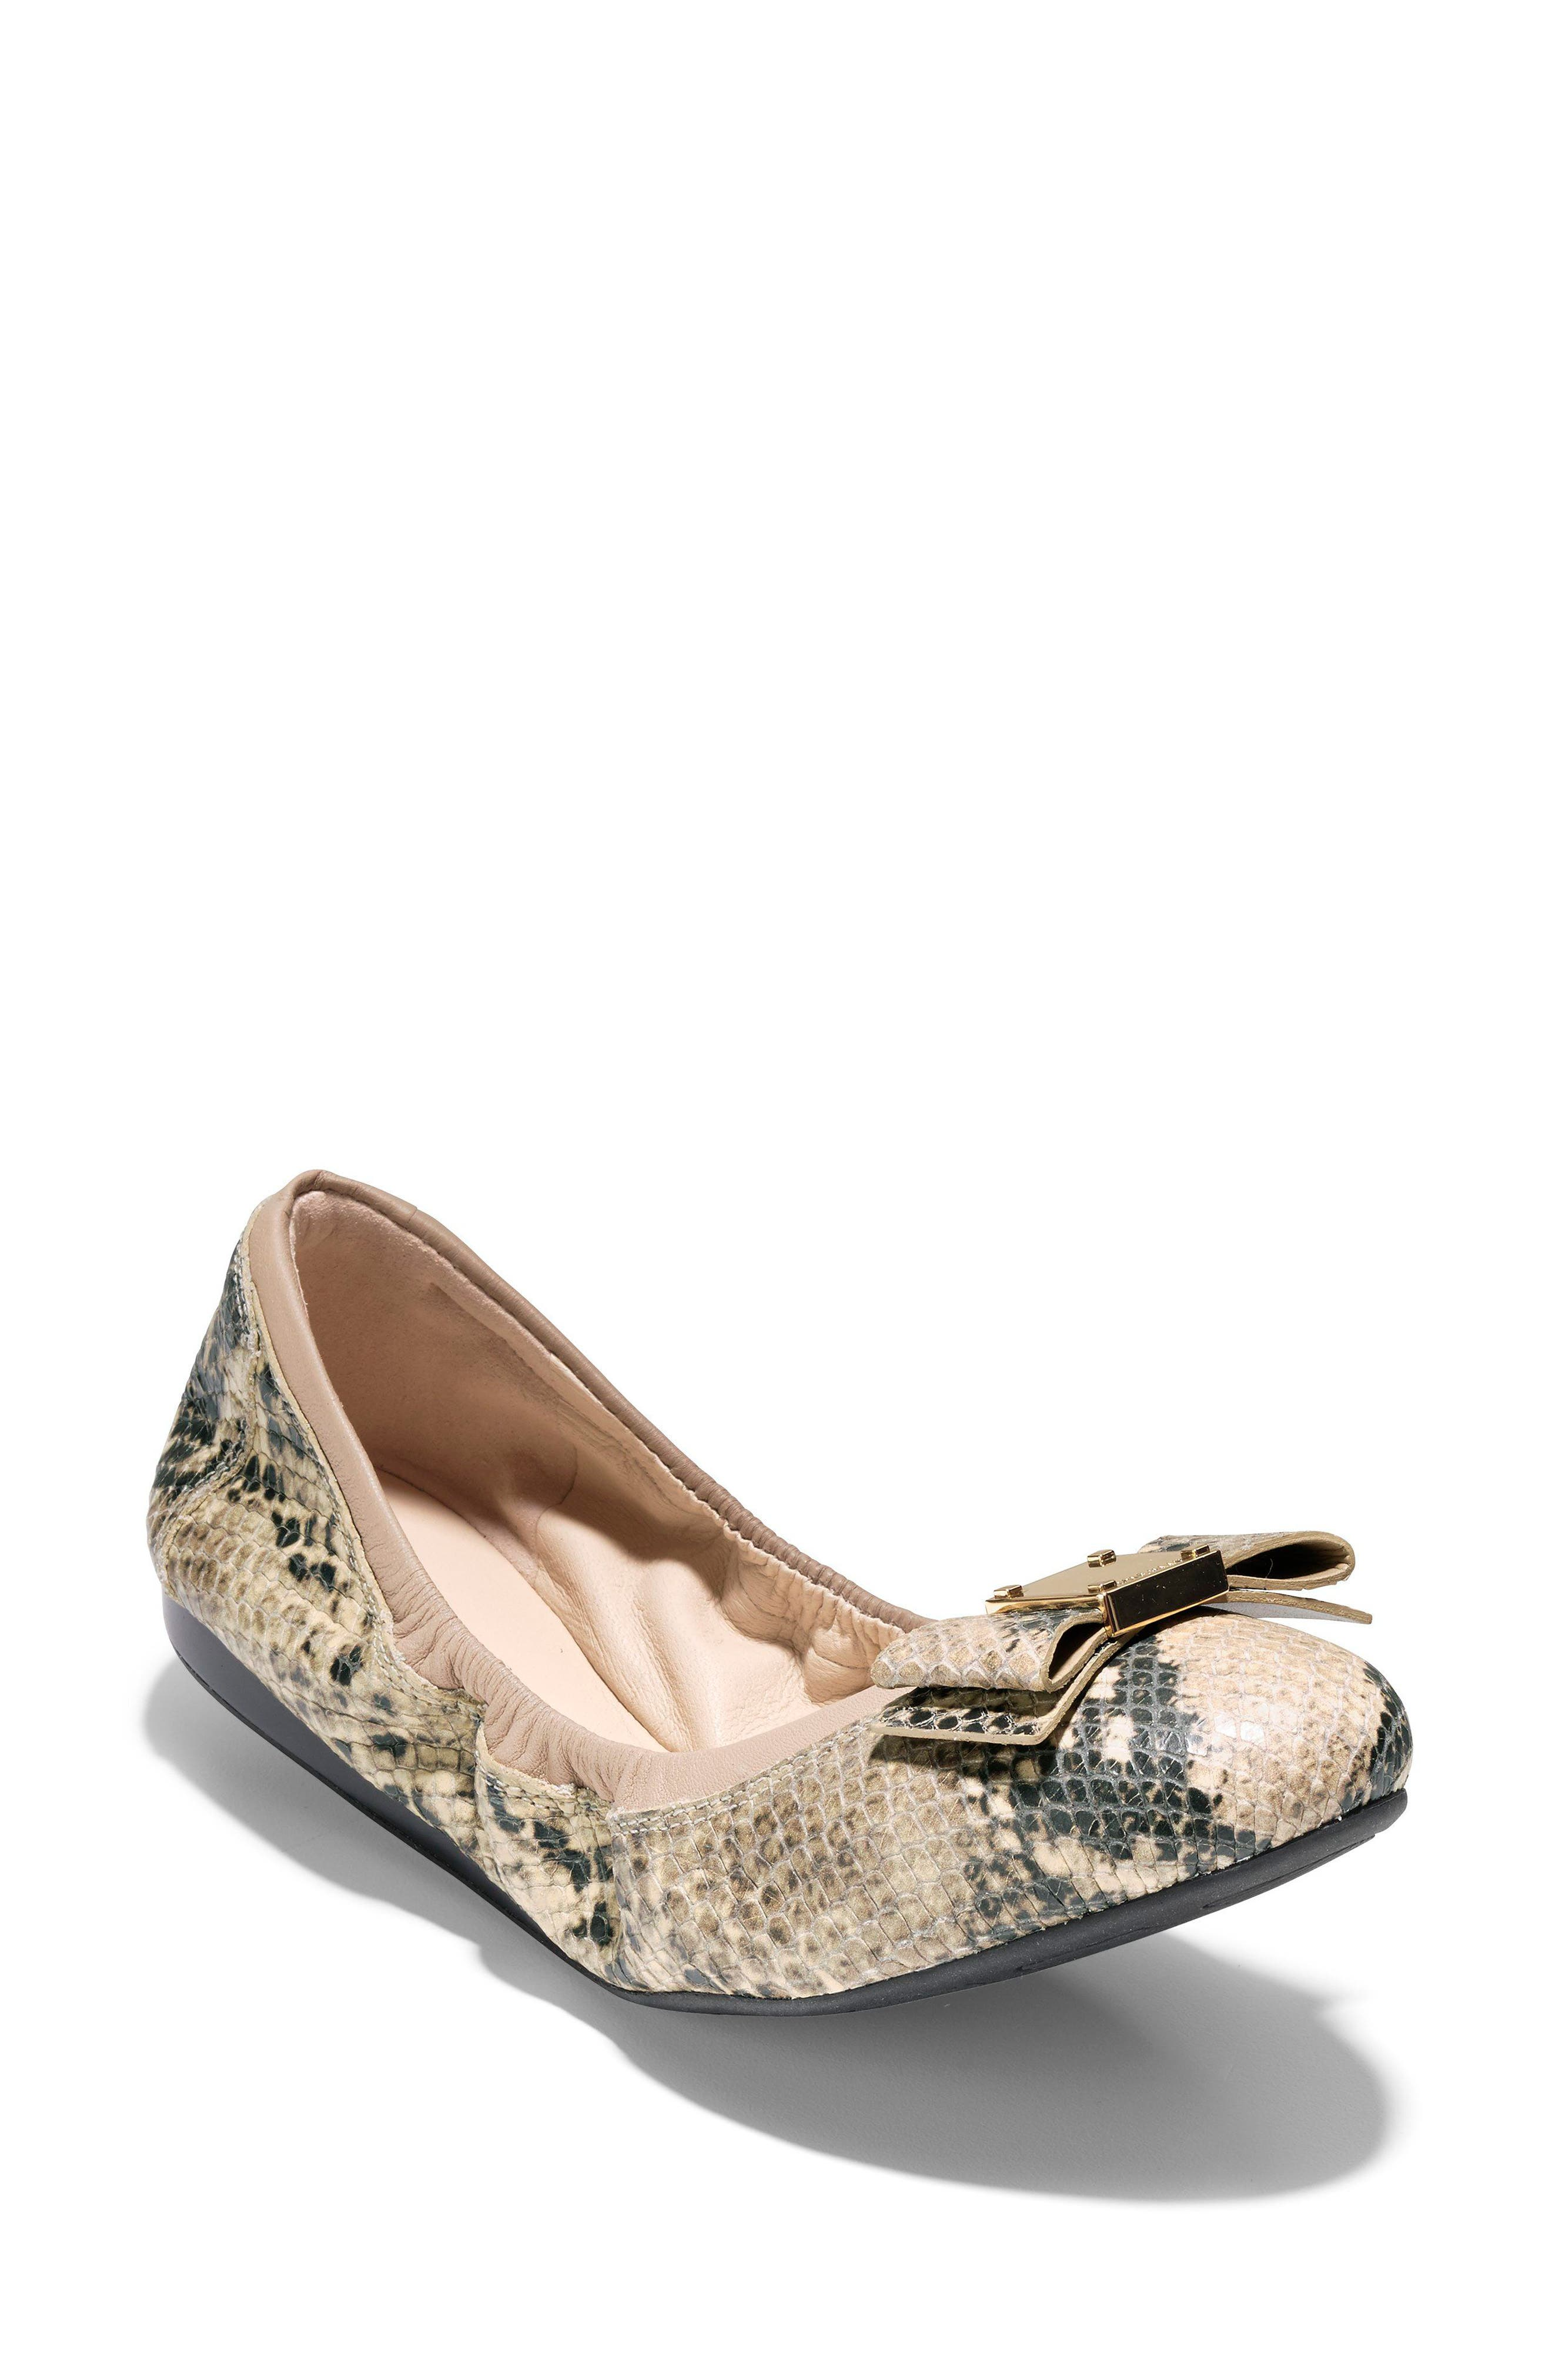 'Tali' Bow Ballet Flat,                         Main,                         color, Roccia Snake Print Leather